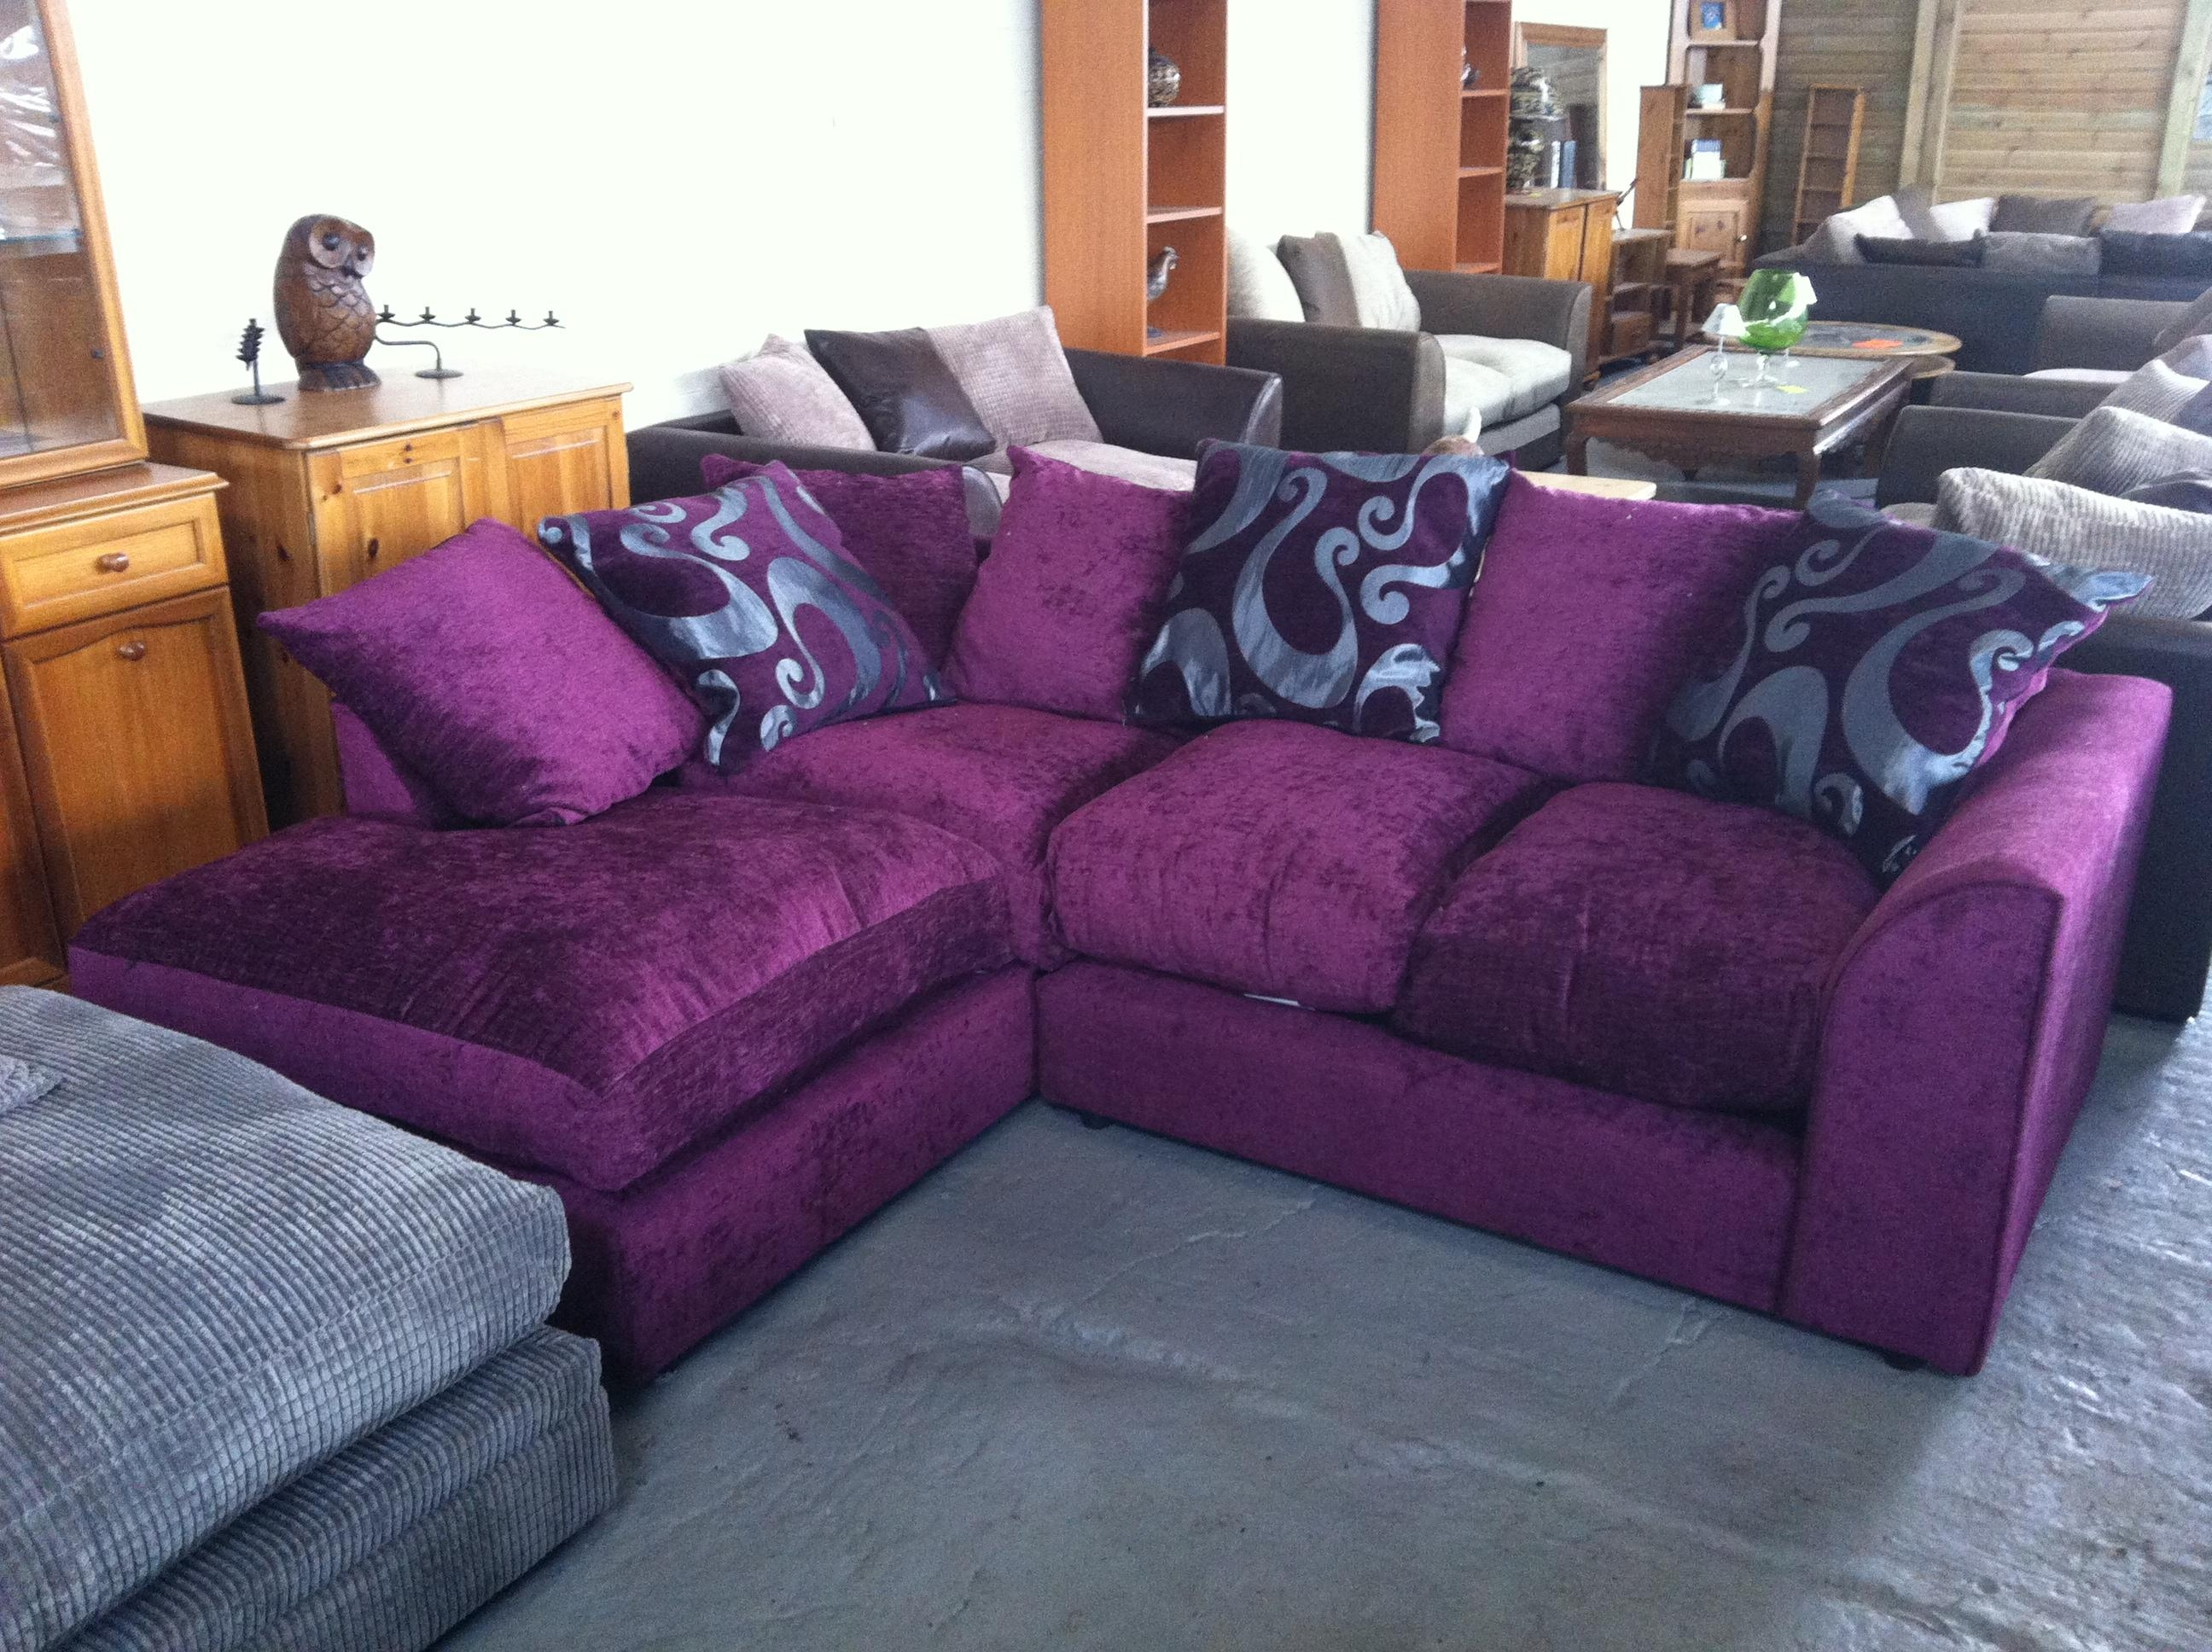 20 inspirations velvet purple sofas sofa ideas for Purple sofa